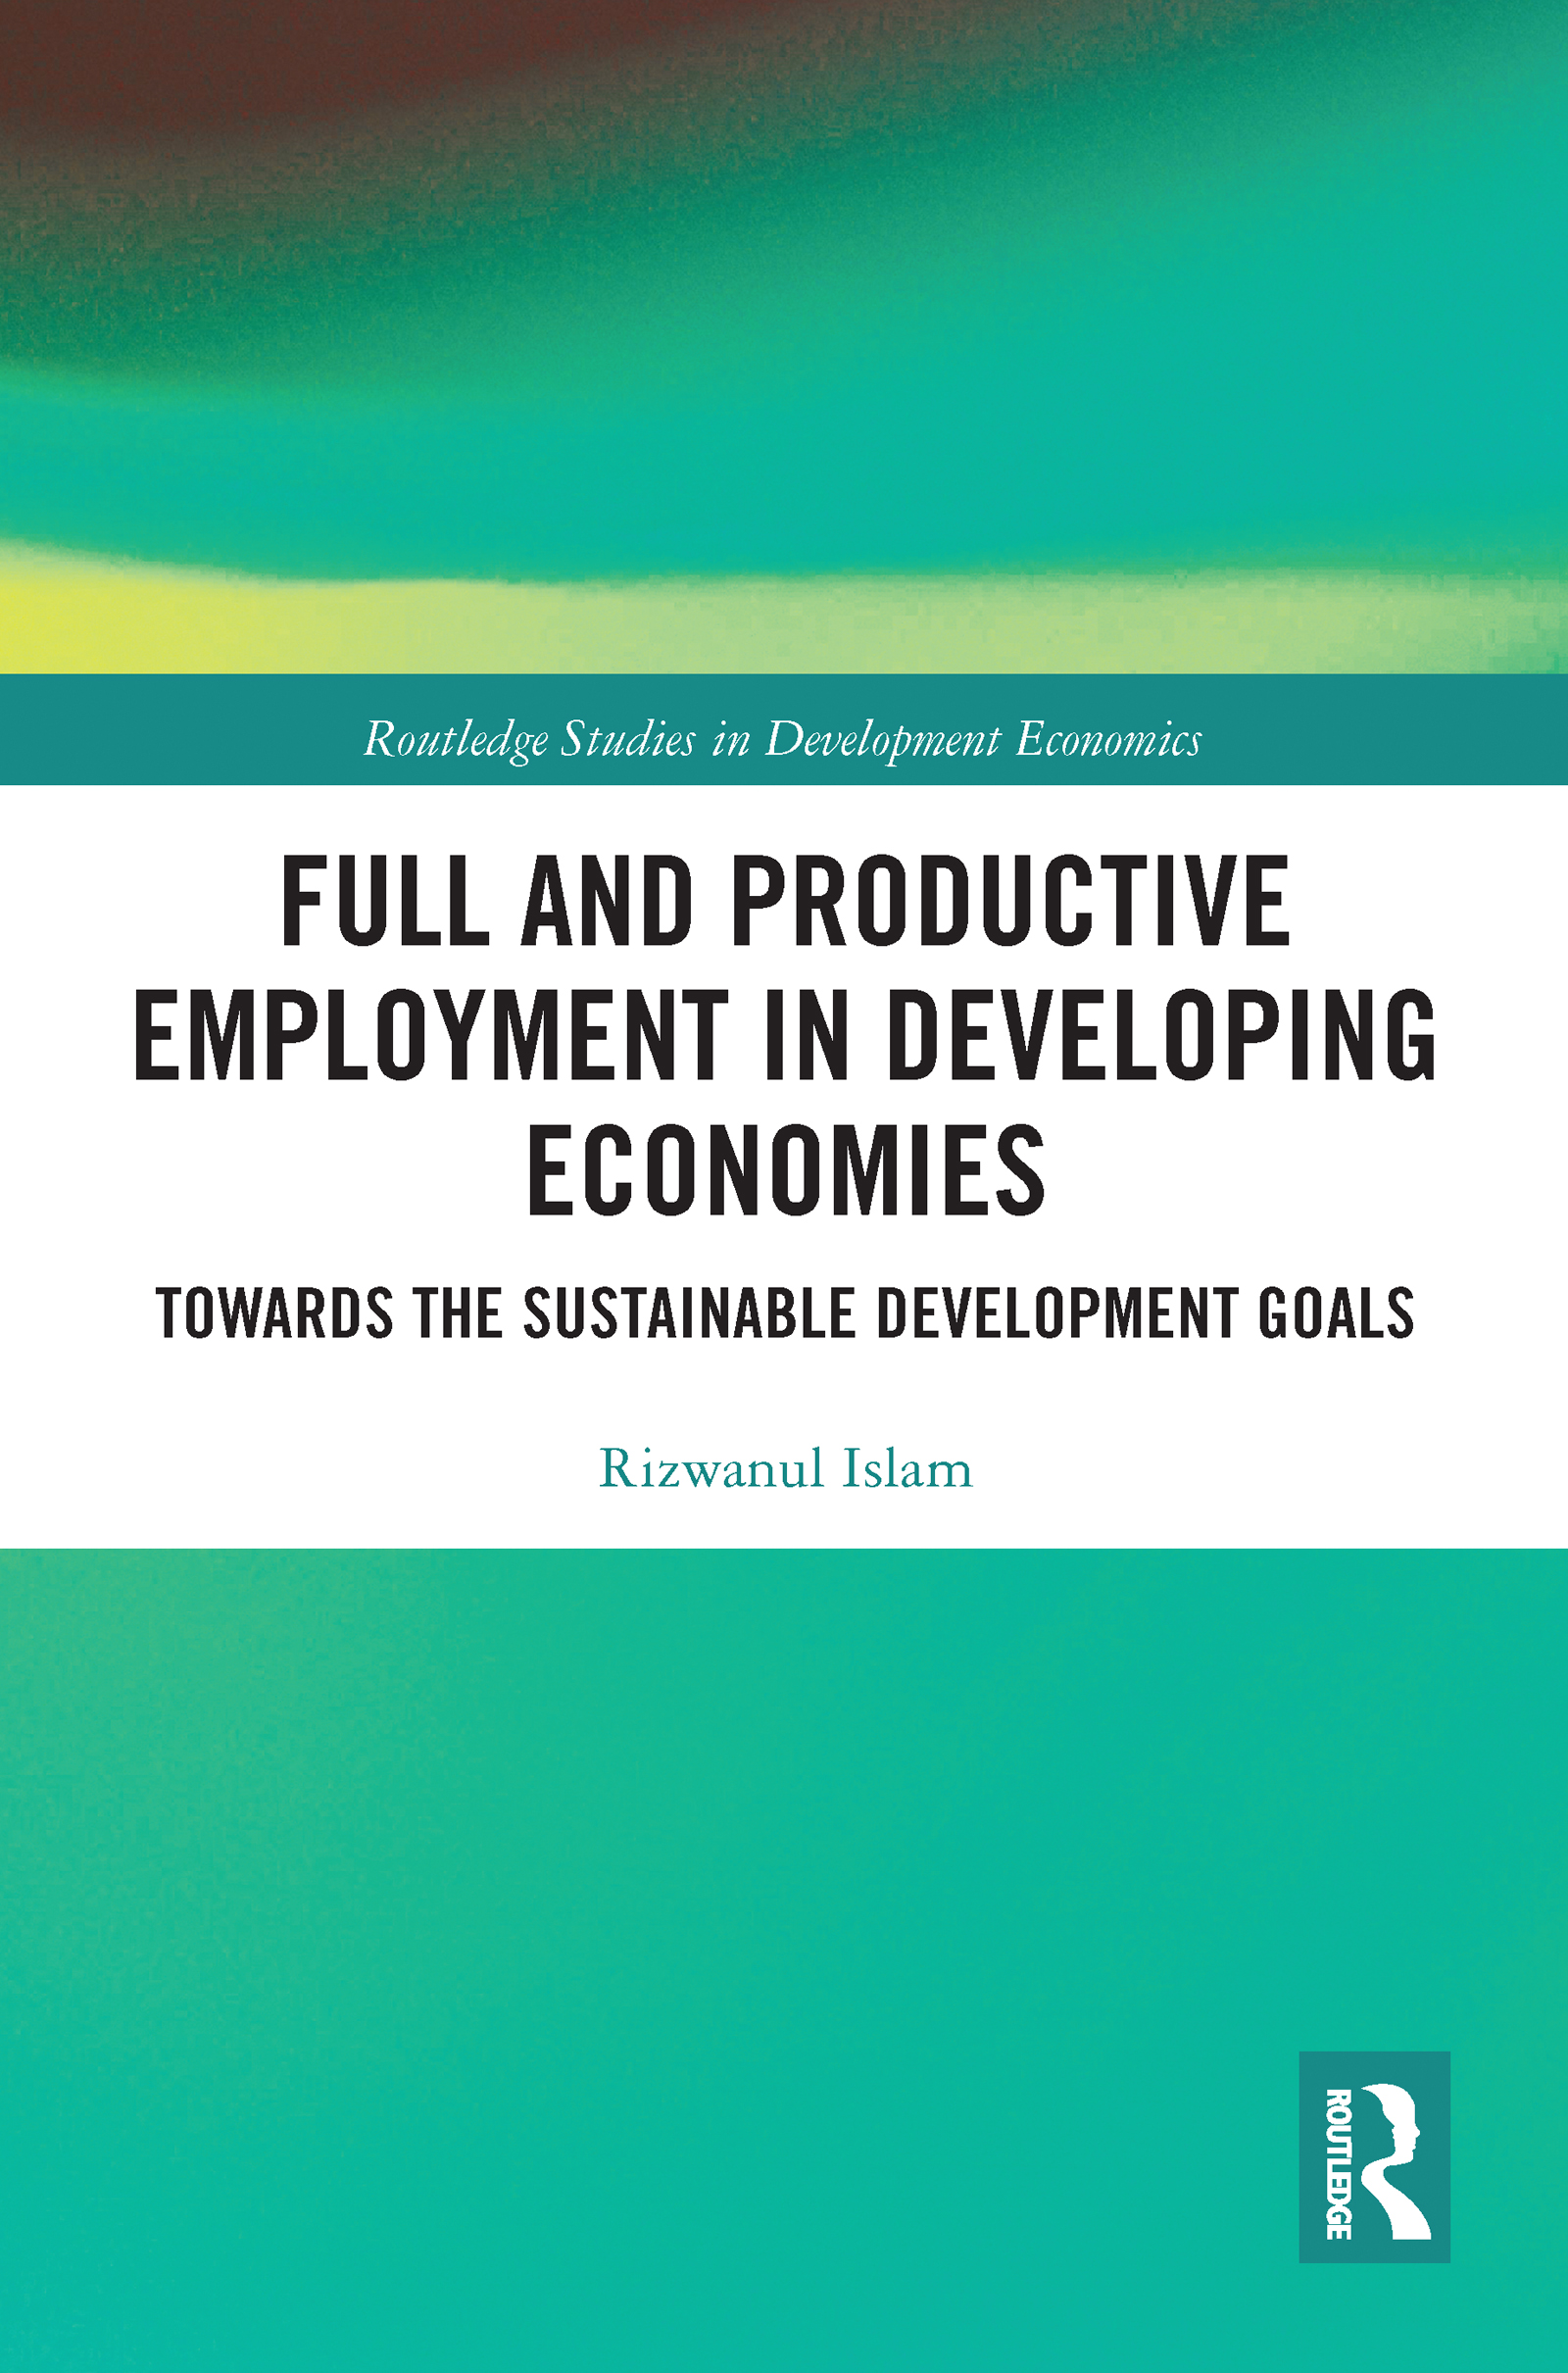 Full and Productive Employment in Developing Economies